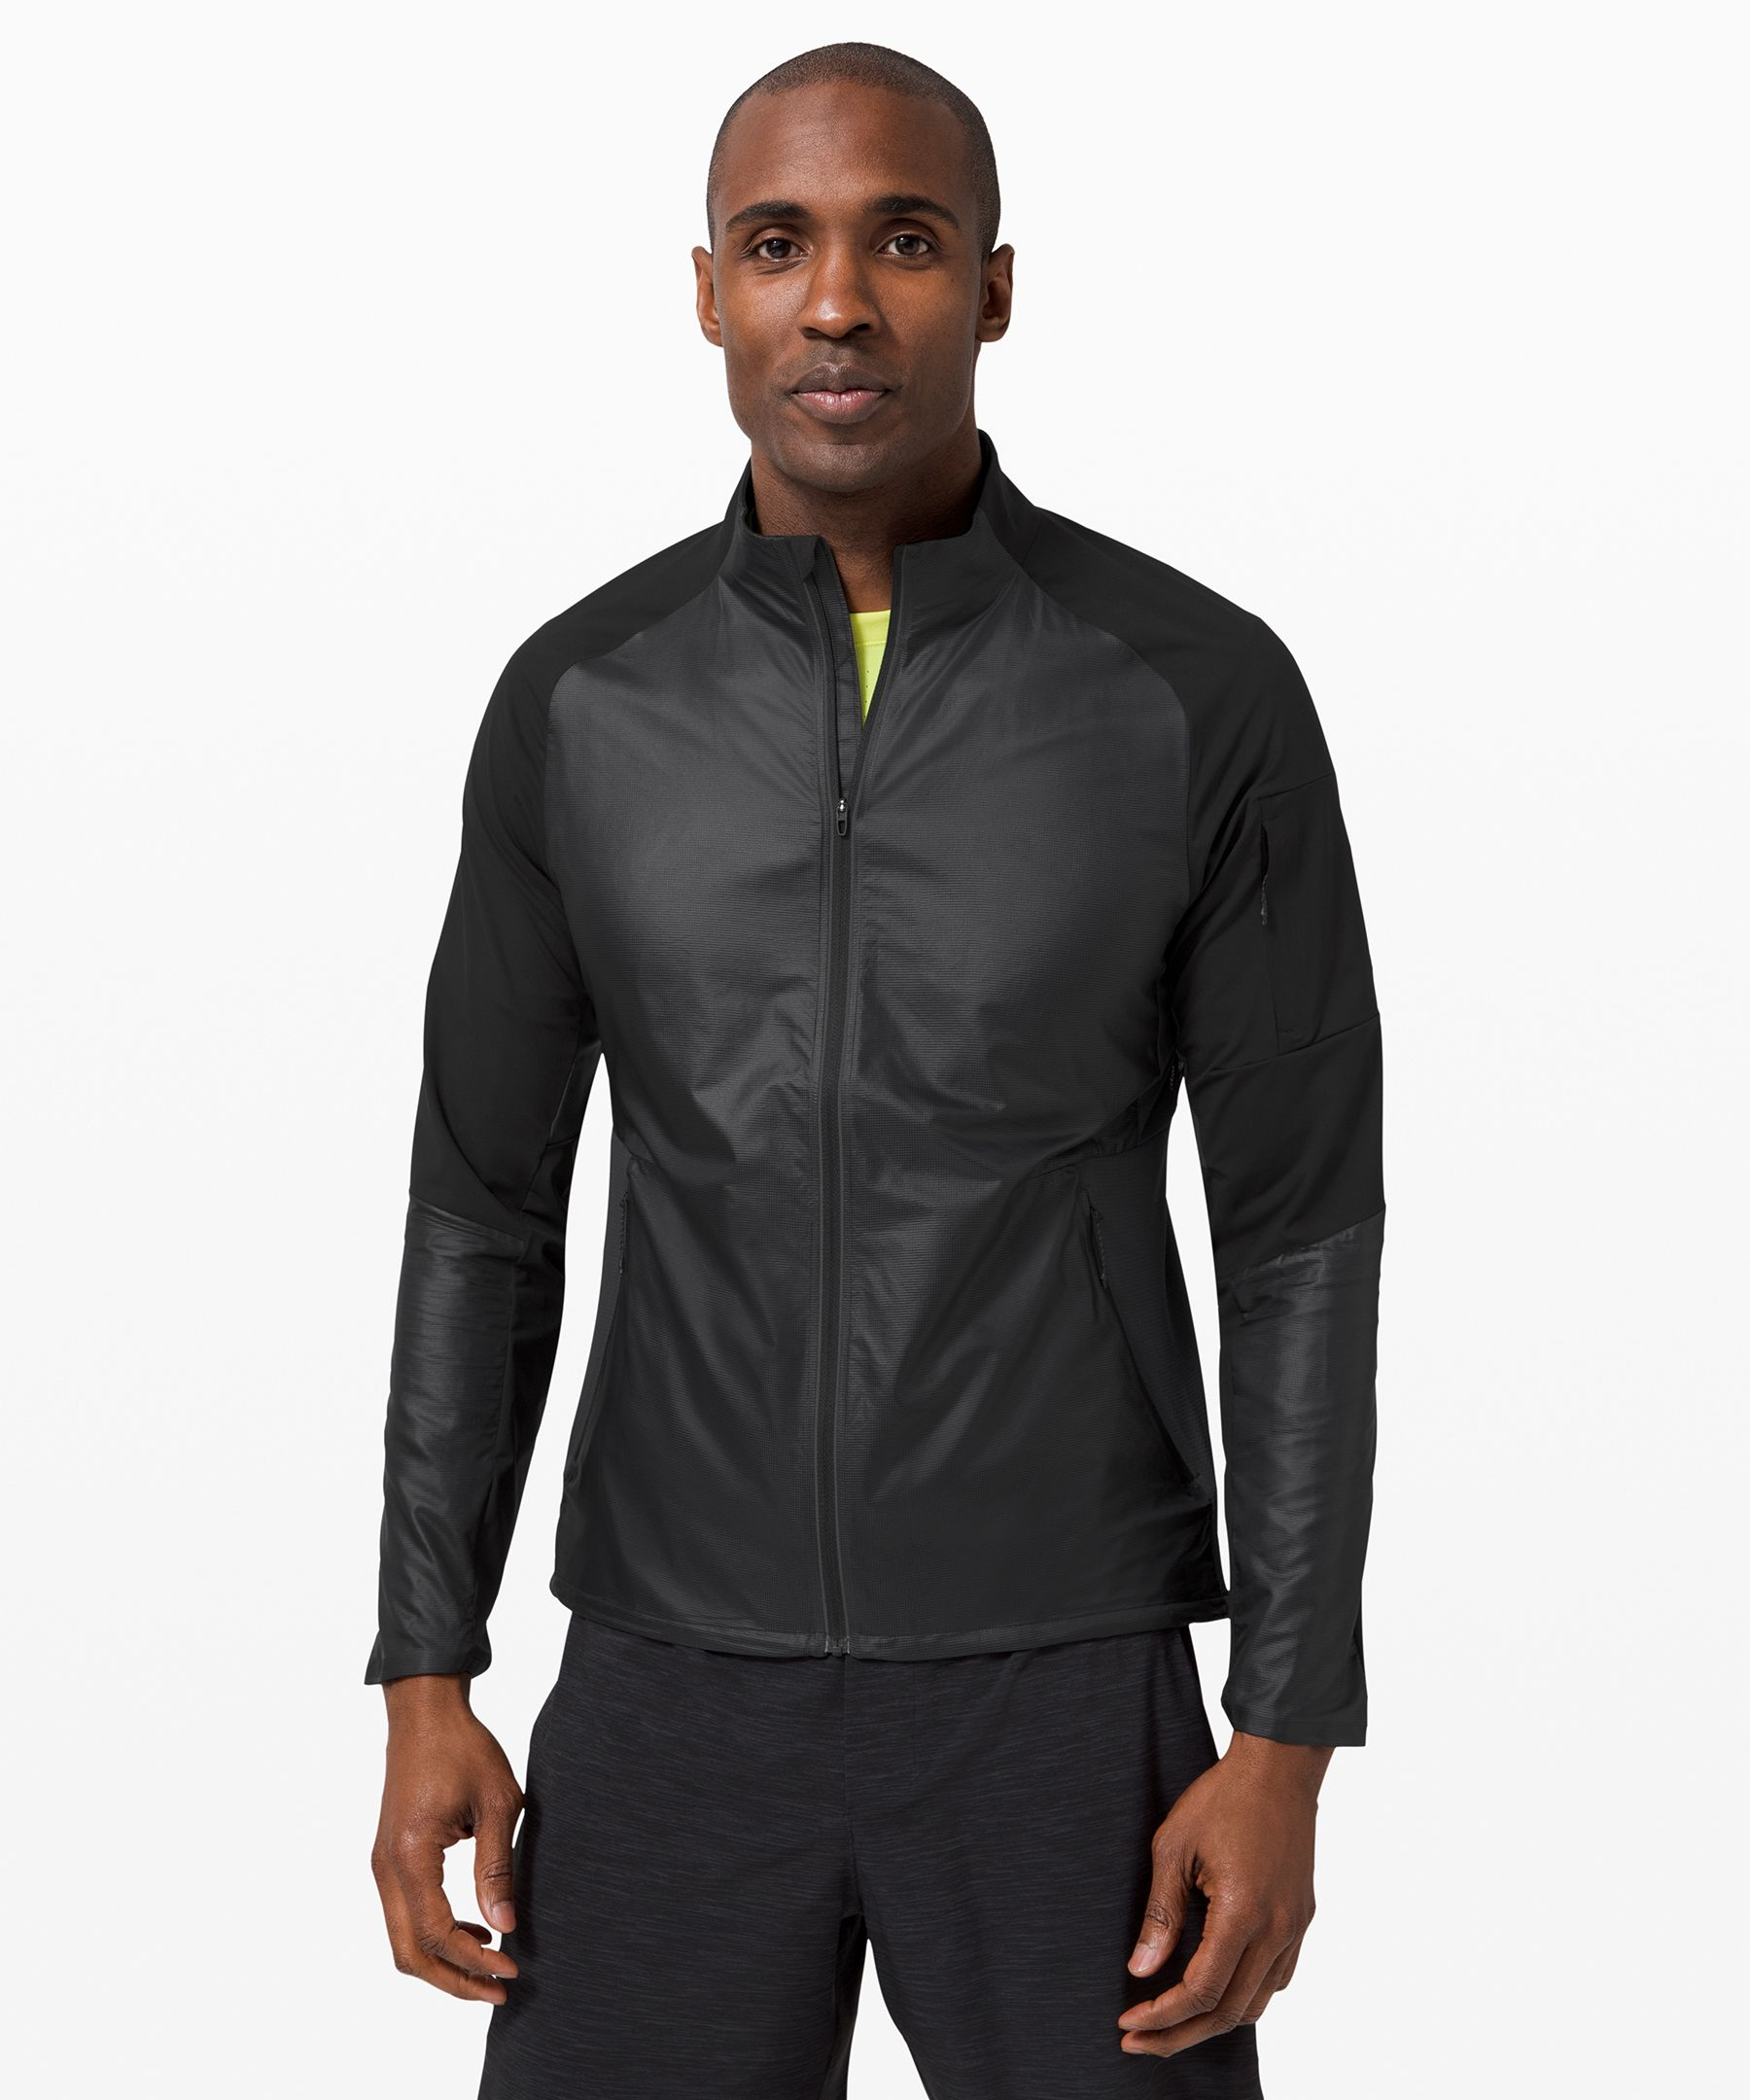 Power through your last mile  with nothing holding you back.  Designed to be your optimum  running shell with a fit  that\\\'s made to move, this  jacket is made from  water-repellent fabric on the  front to protect your core,  and a Mesh fabric back to let  your body breathe.